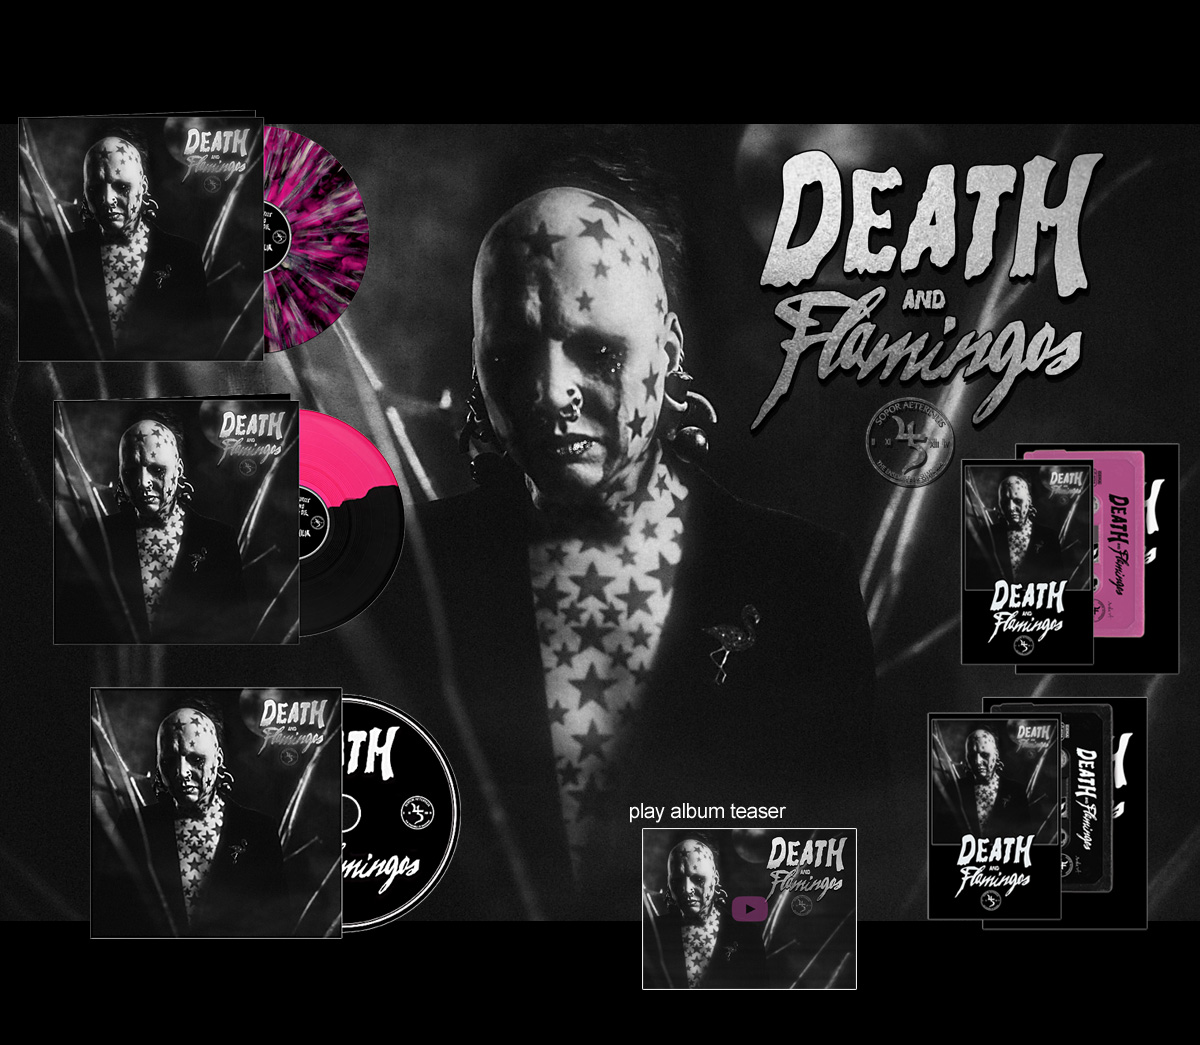 Death_Flamingos_editions